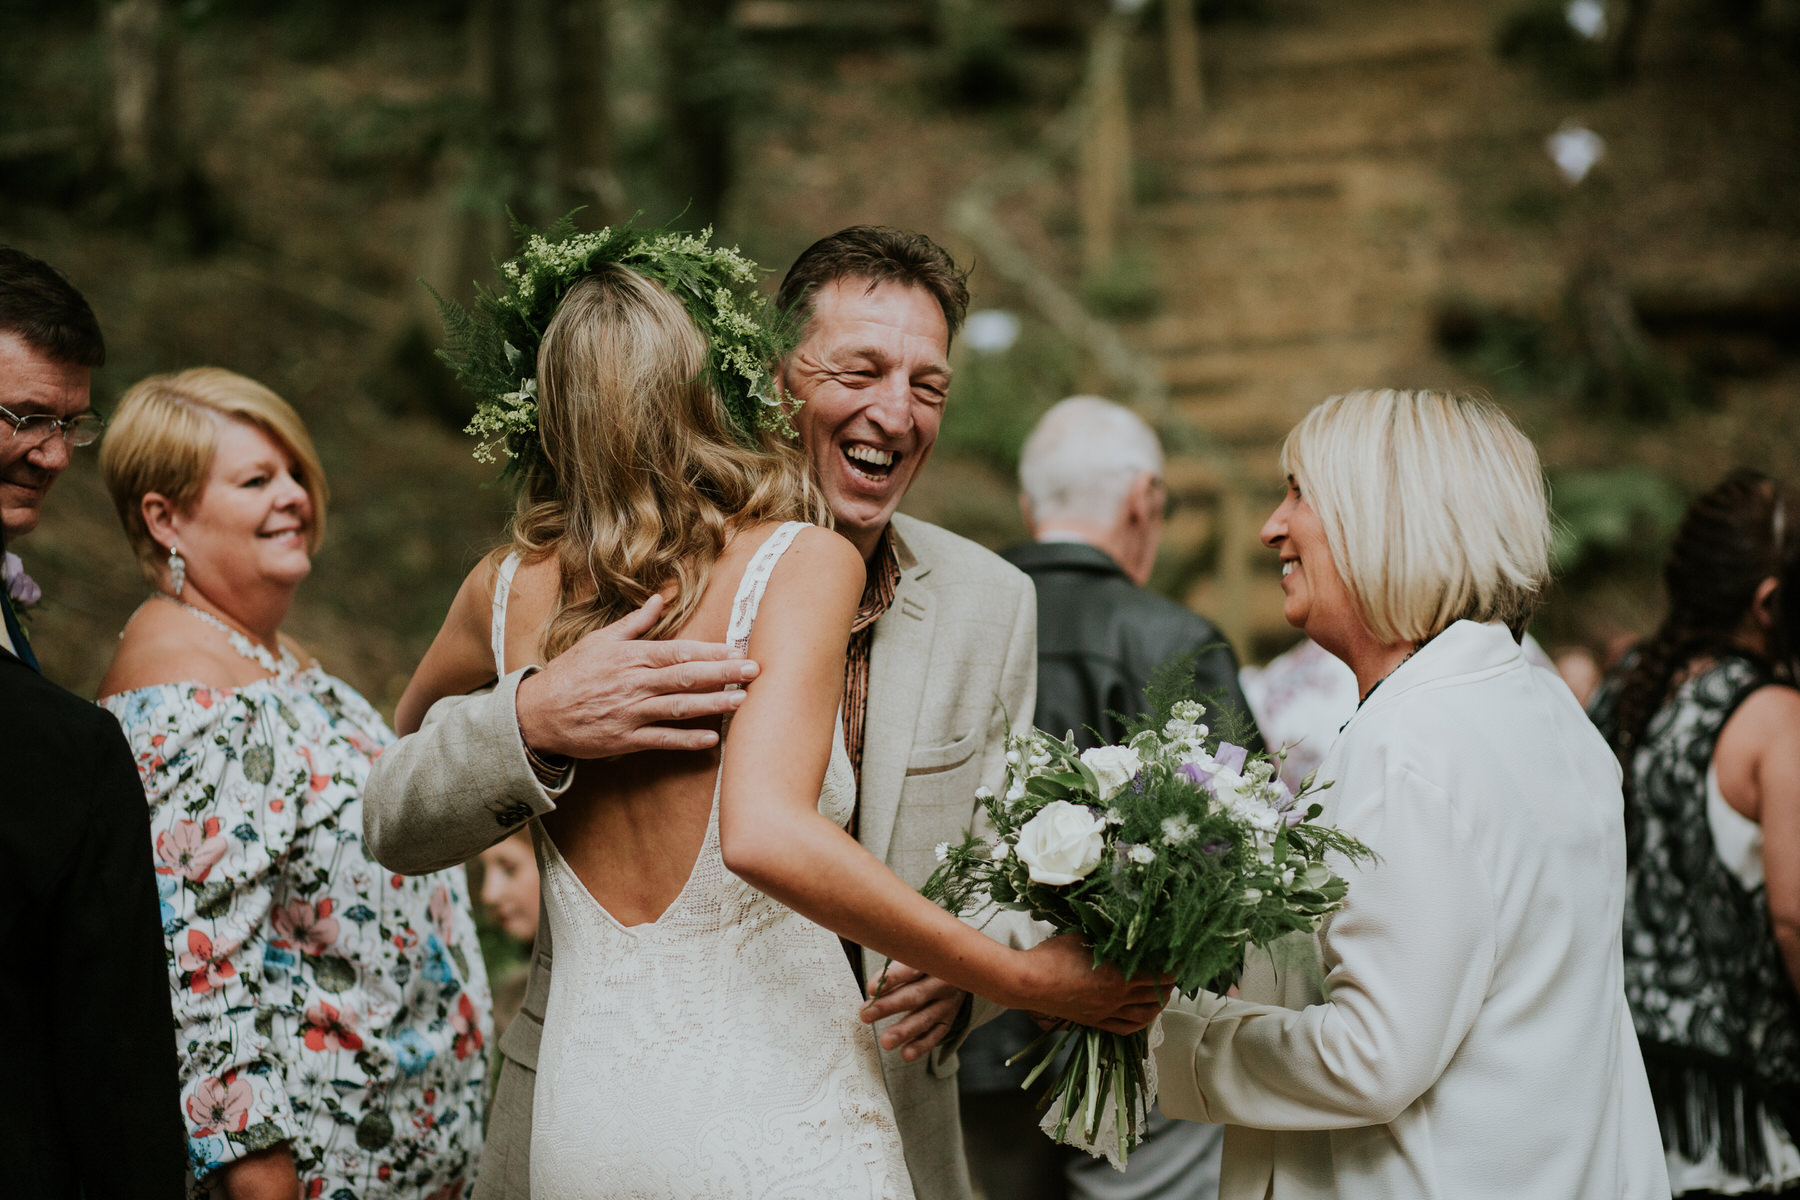 44 guests congratulating bride woodland.jpg